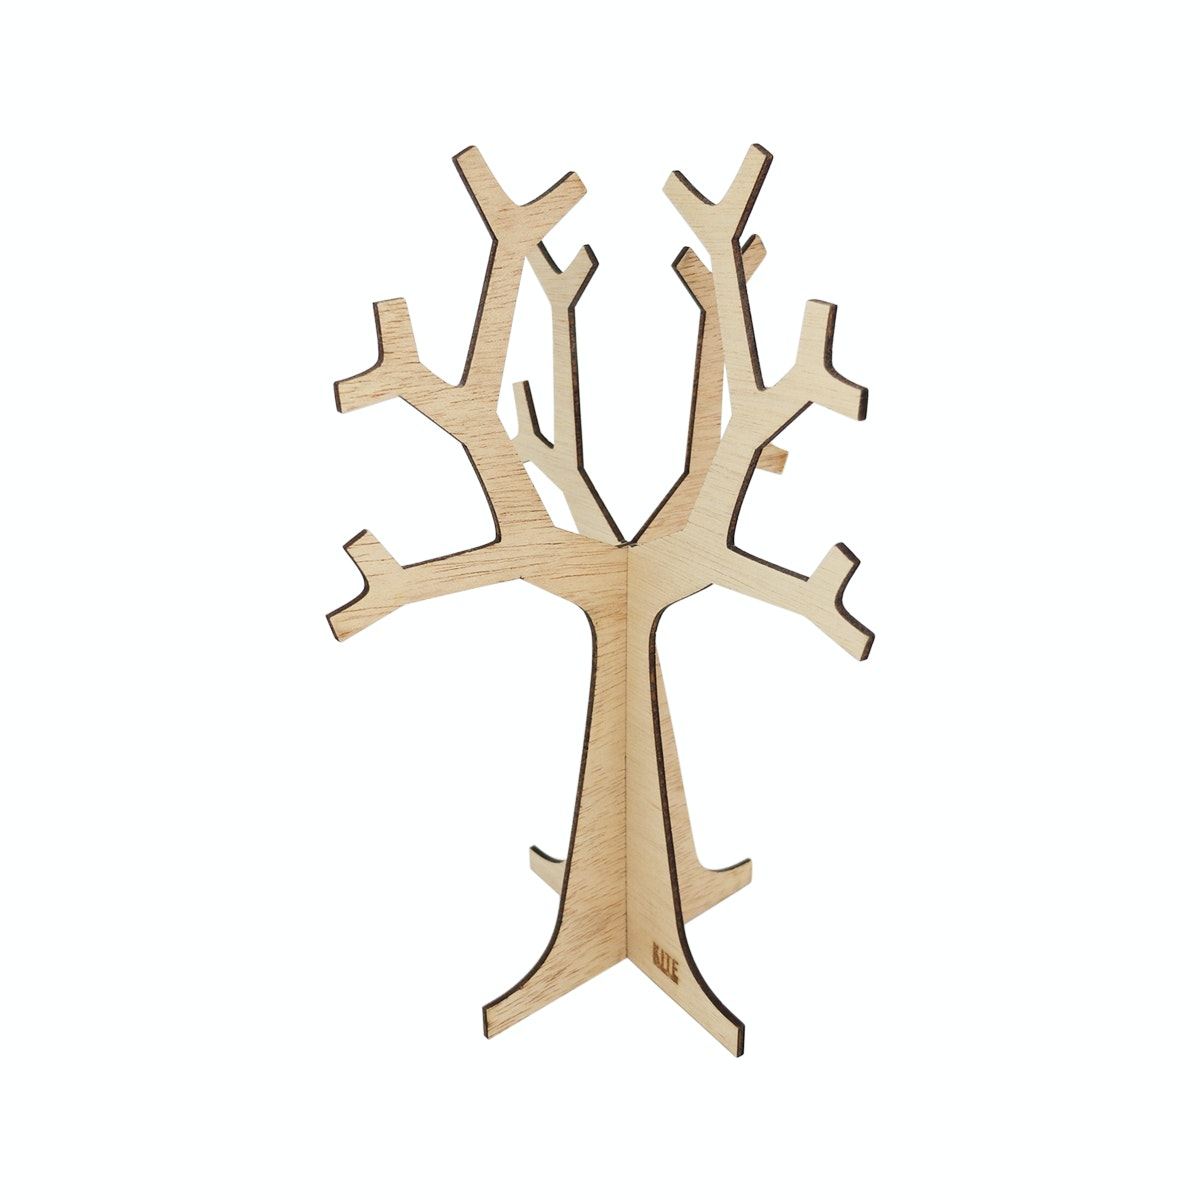 Kite Design Jewelry Tree Wood